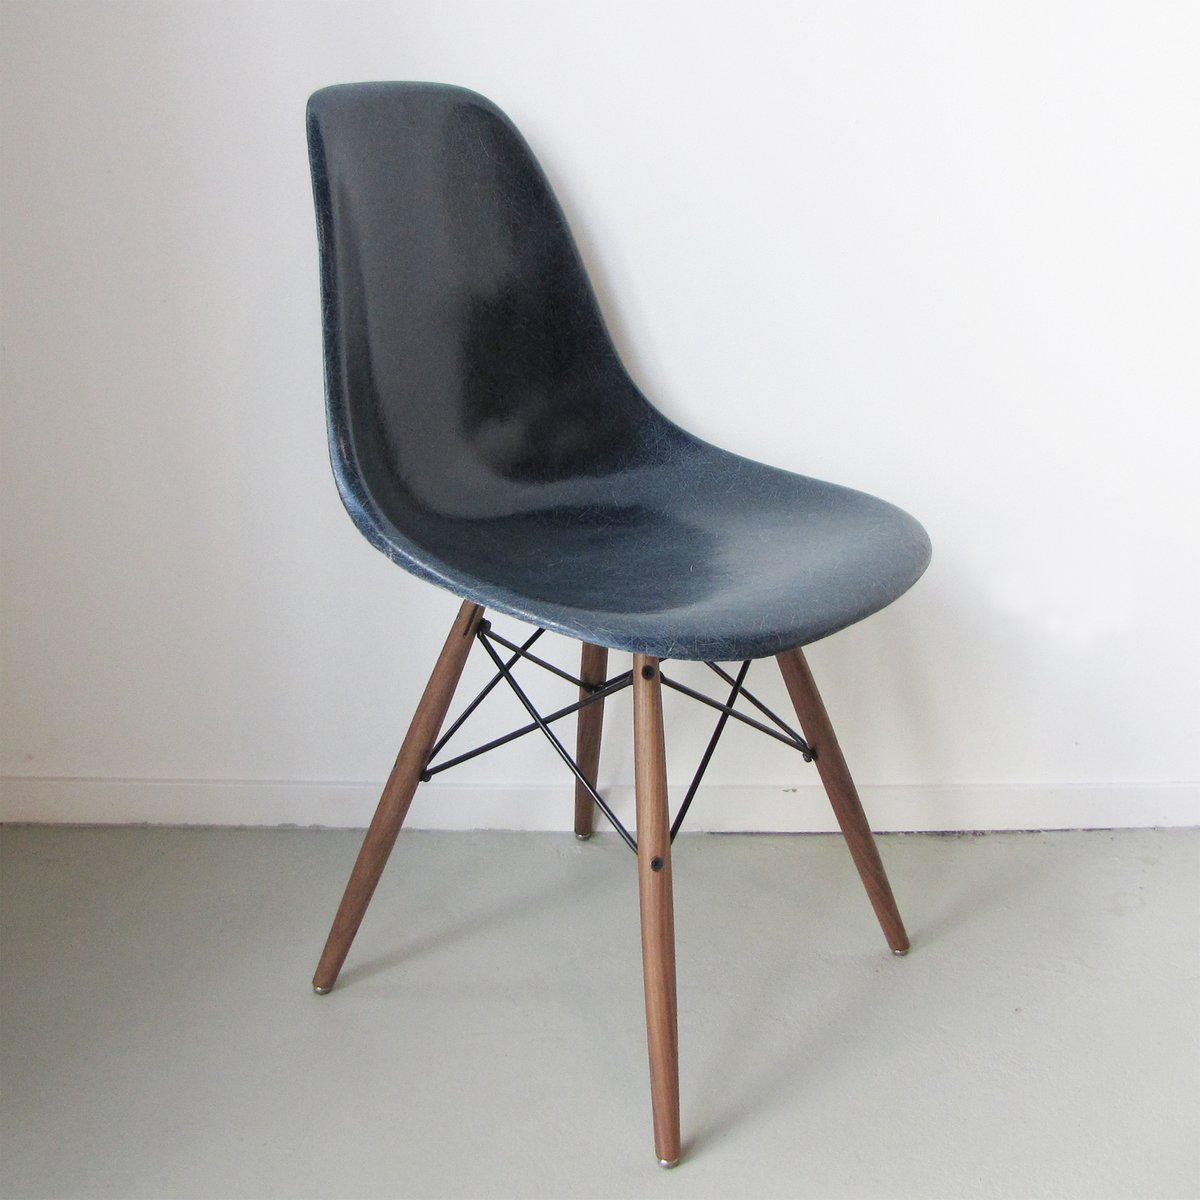 Dsw chair by charles ray eames for herman miller usa for Charles eames chaise dsw